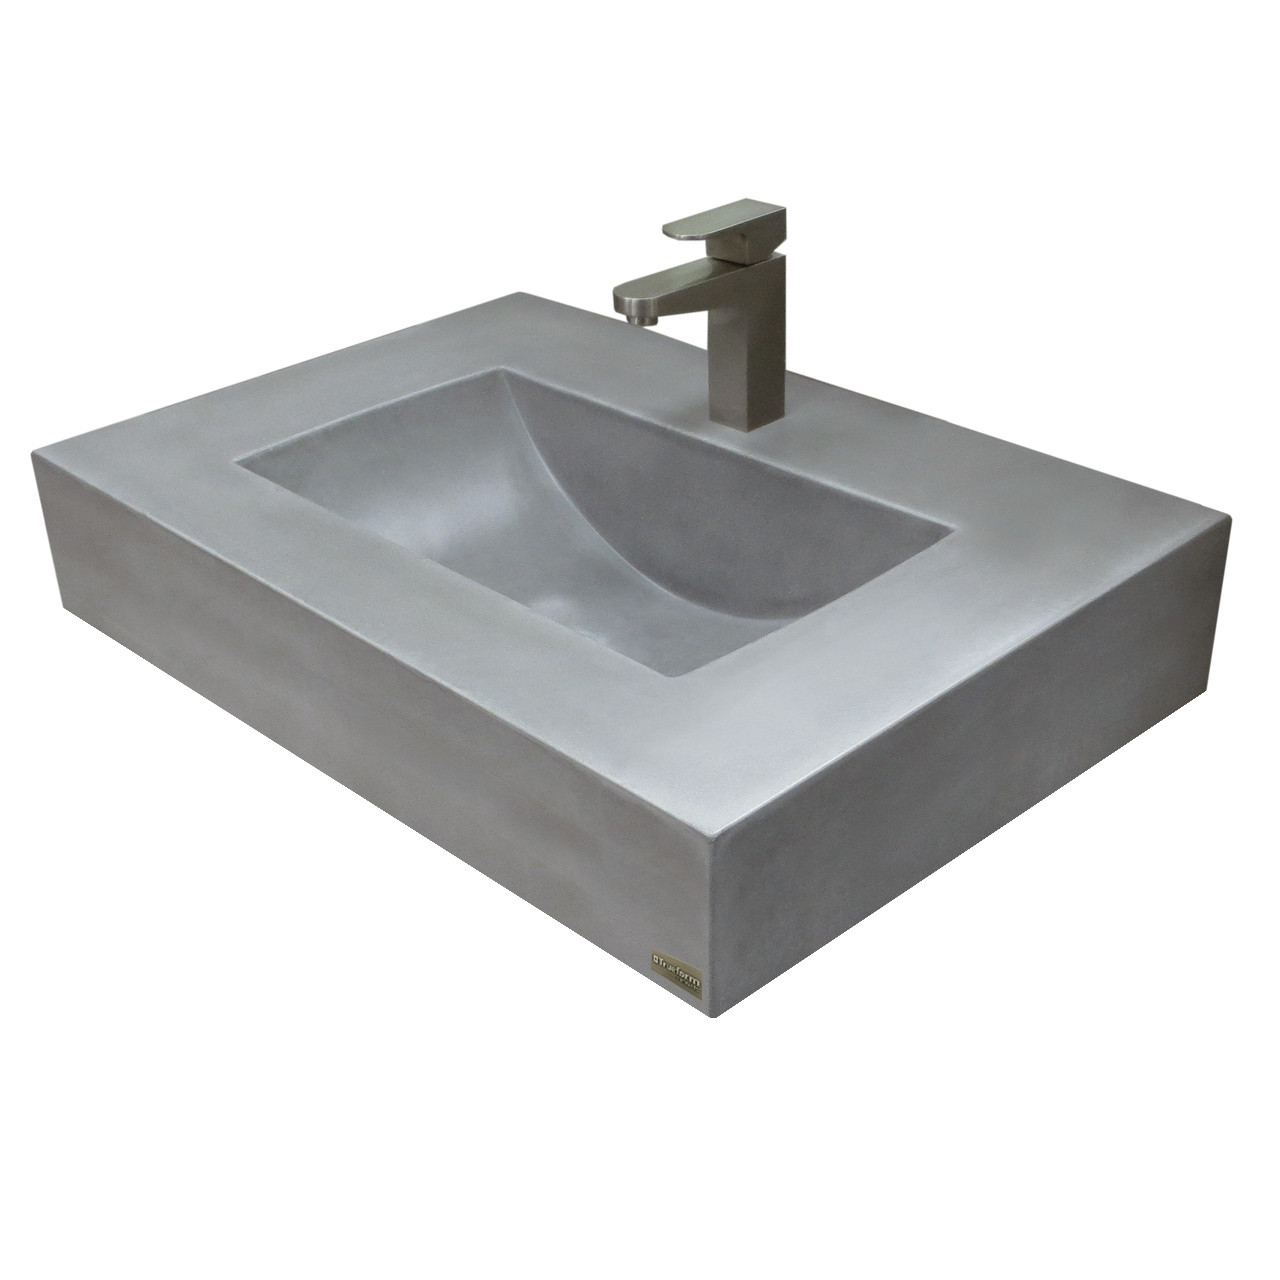 Trueform 30 Floating Concrete Lacus Sink Is A Custom Modern Sink With